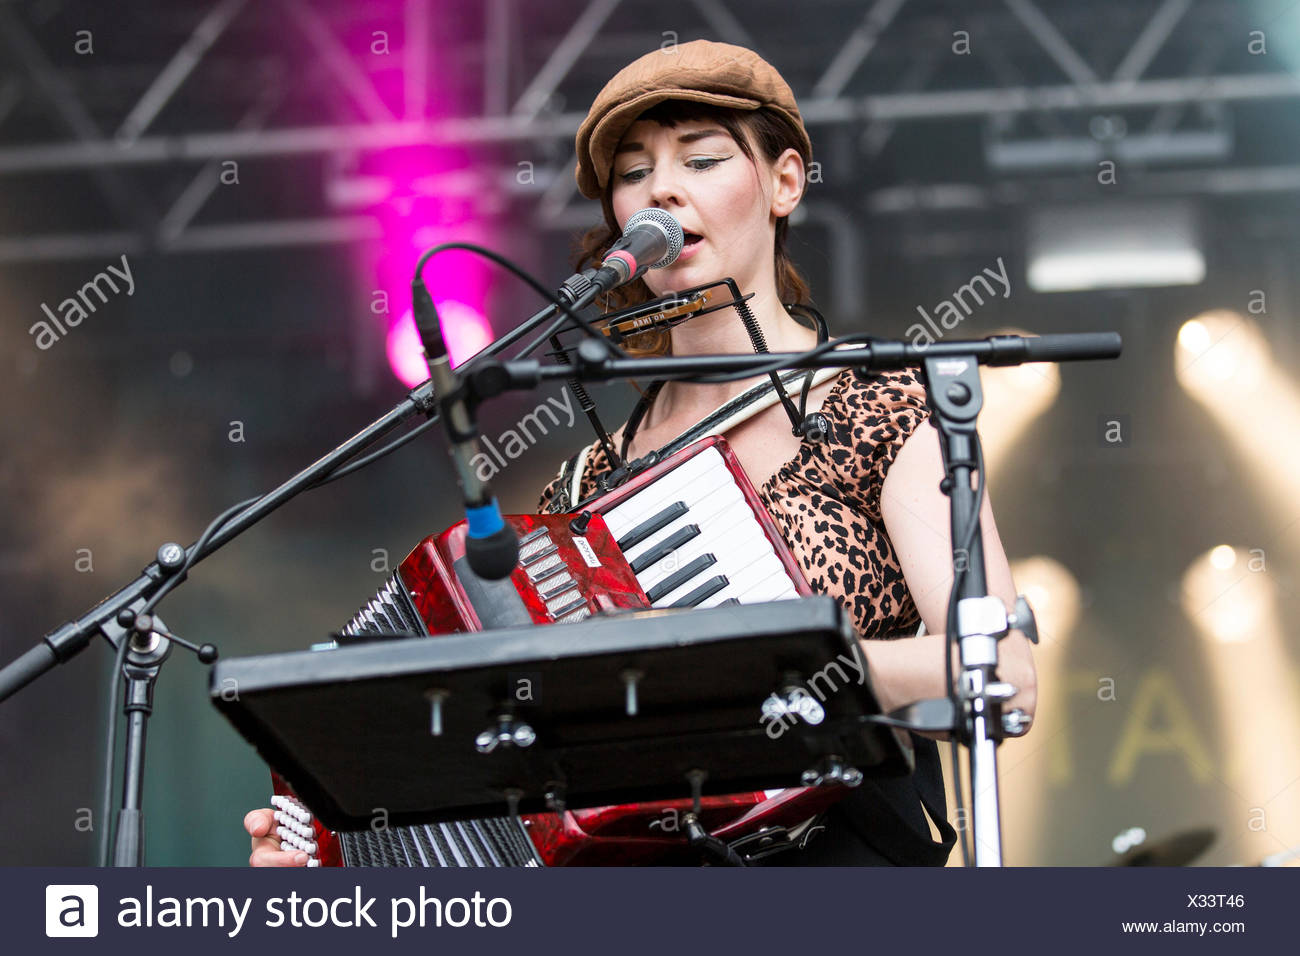 Anne Marit Bergheim with an accordion from the Norwegian girl band Katzenjammer performing live at Heitere Open Air in Zofingen - Stock Image